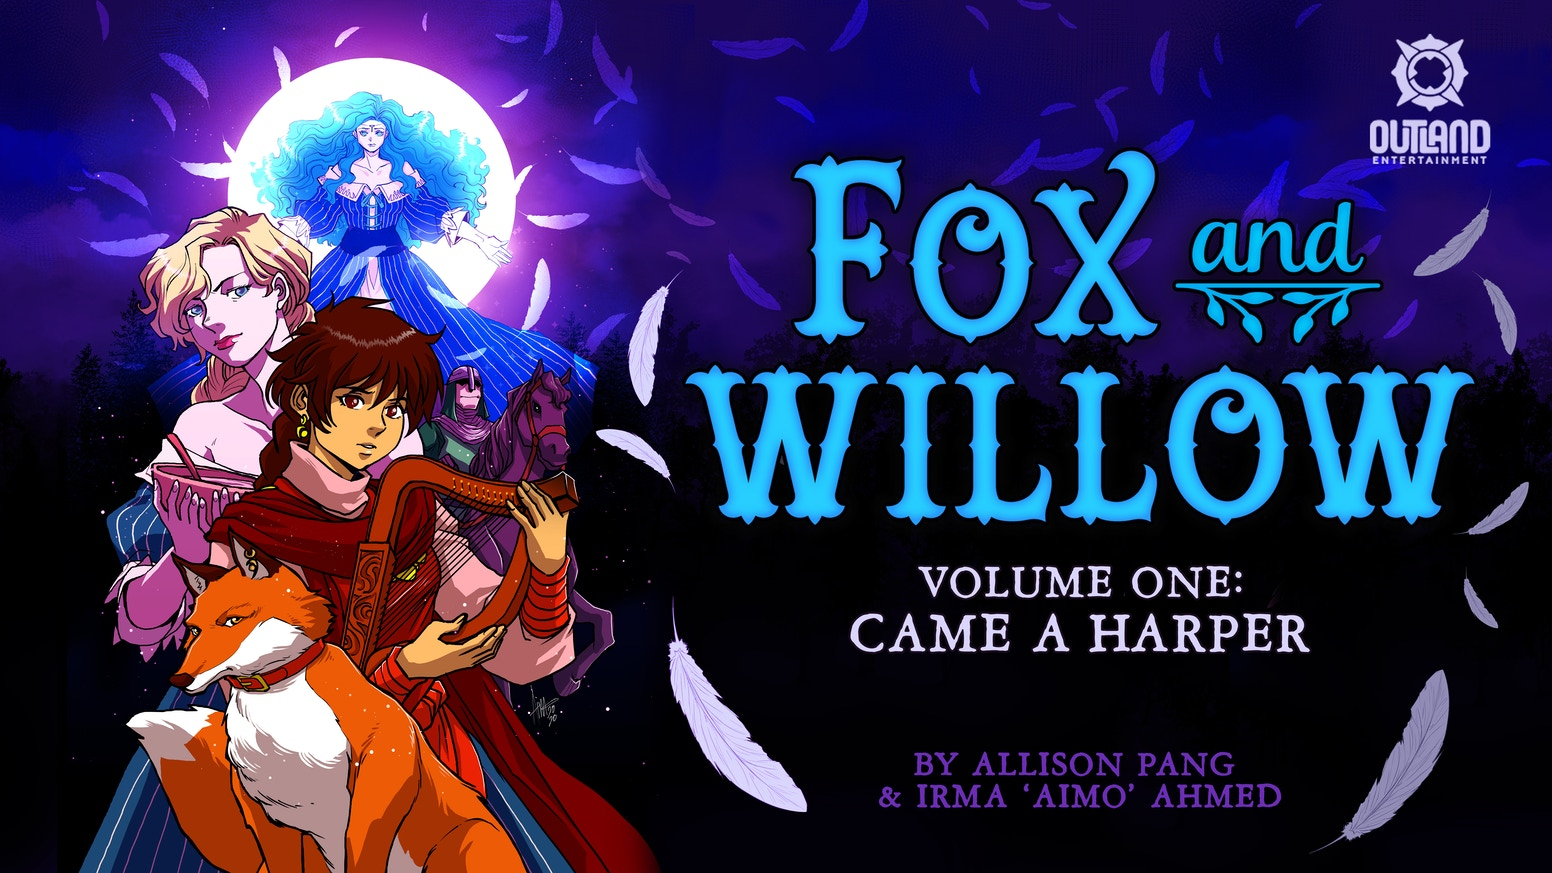 The Fox & Willow webcomic series by Allison Pang and Irma 'Aimo' Ahmed is coming to print!